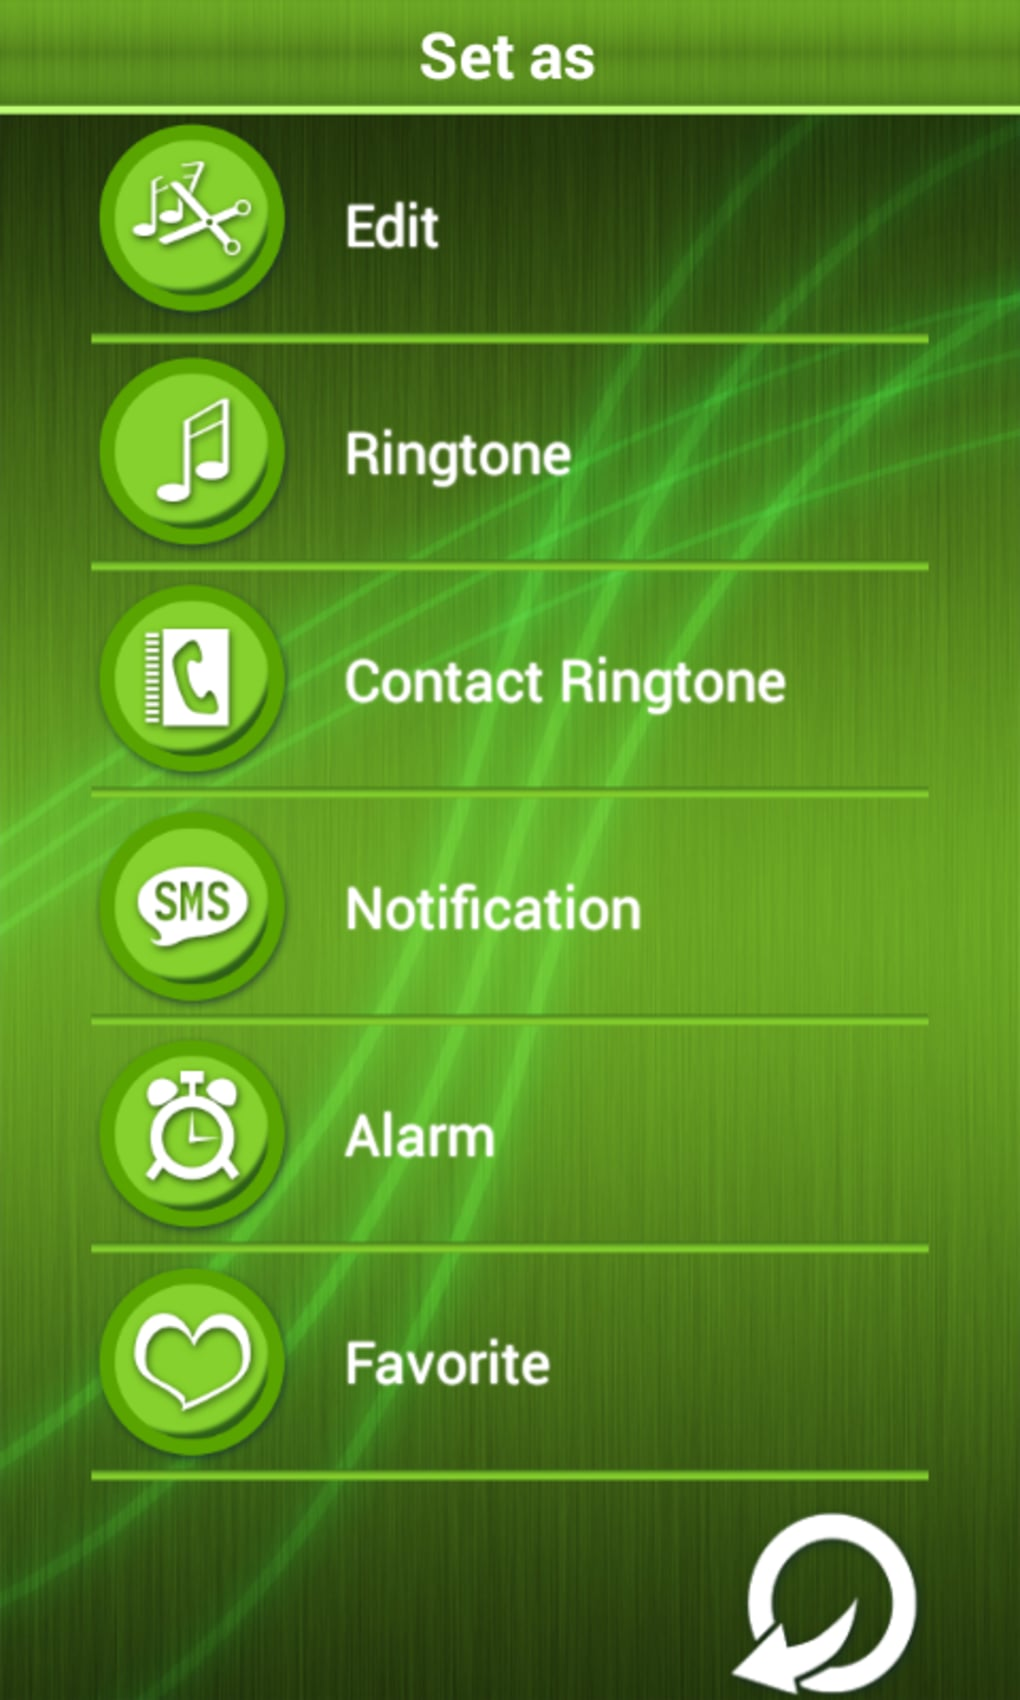 Whistle Ringtones for Android - Download